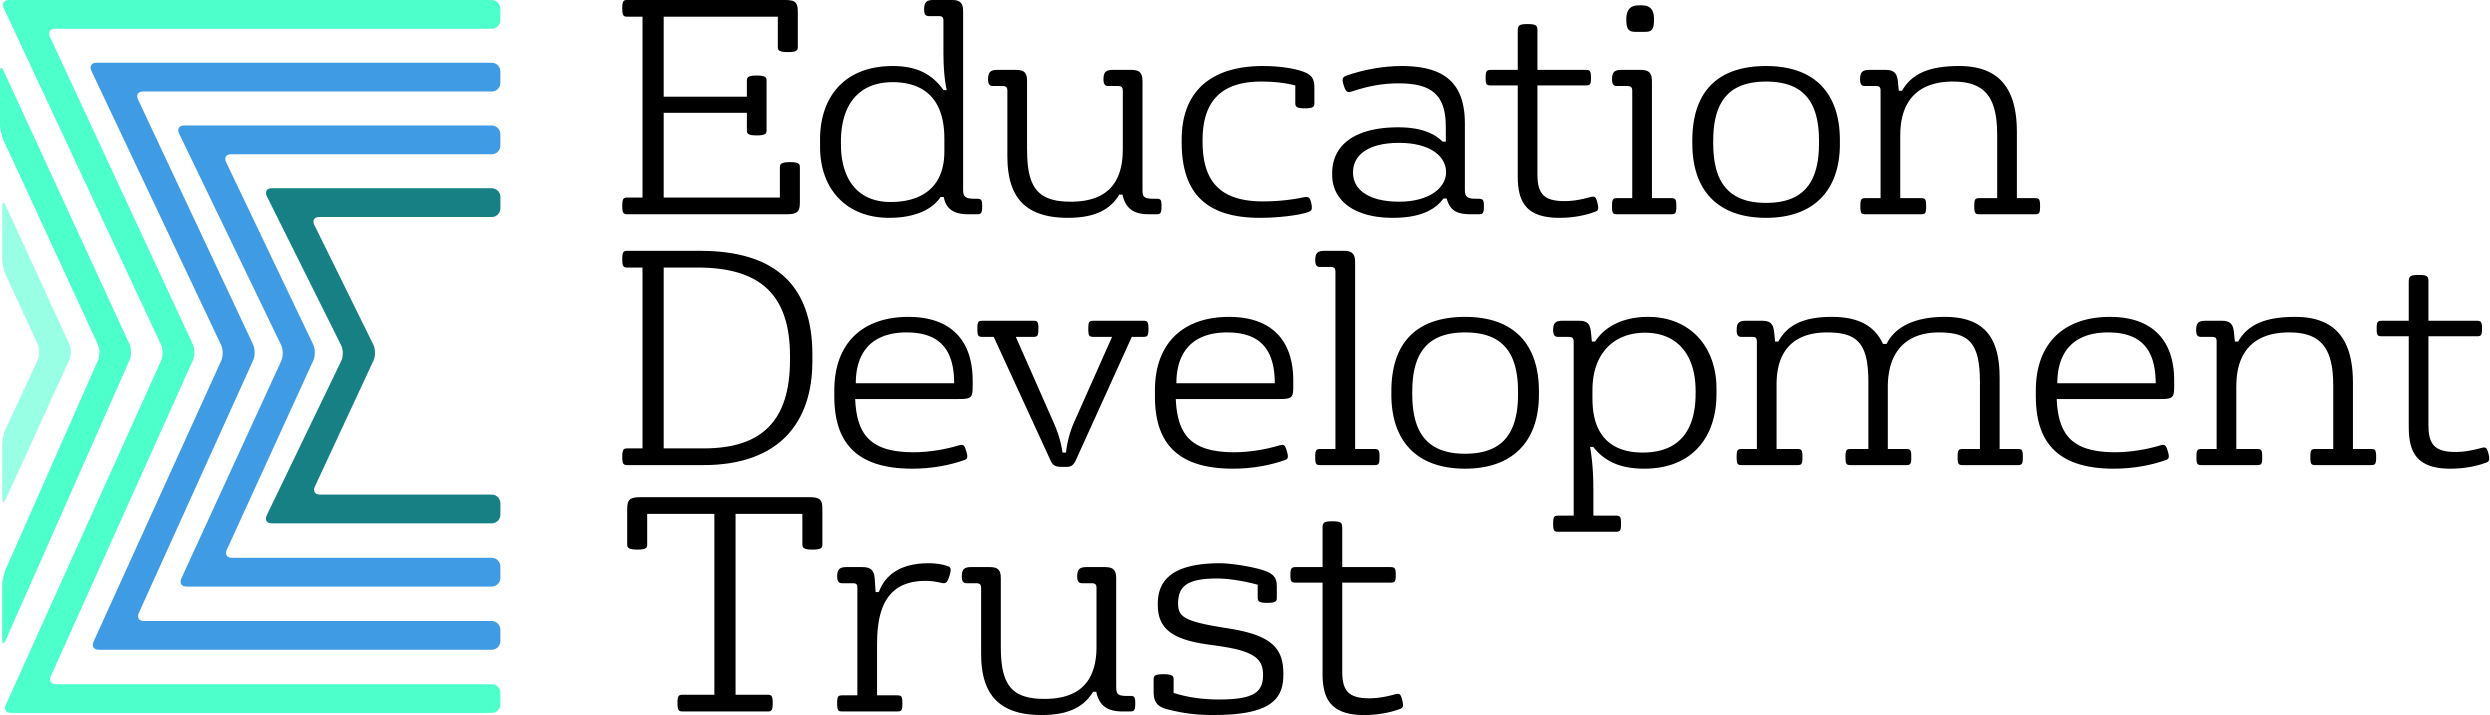 Education-Development-Trust-logo-cmyk